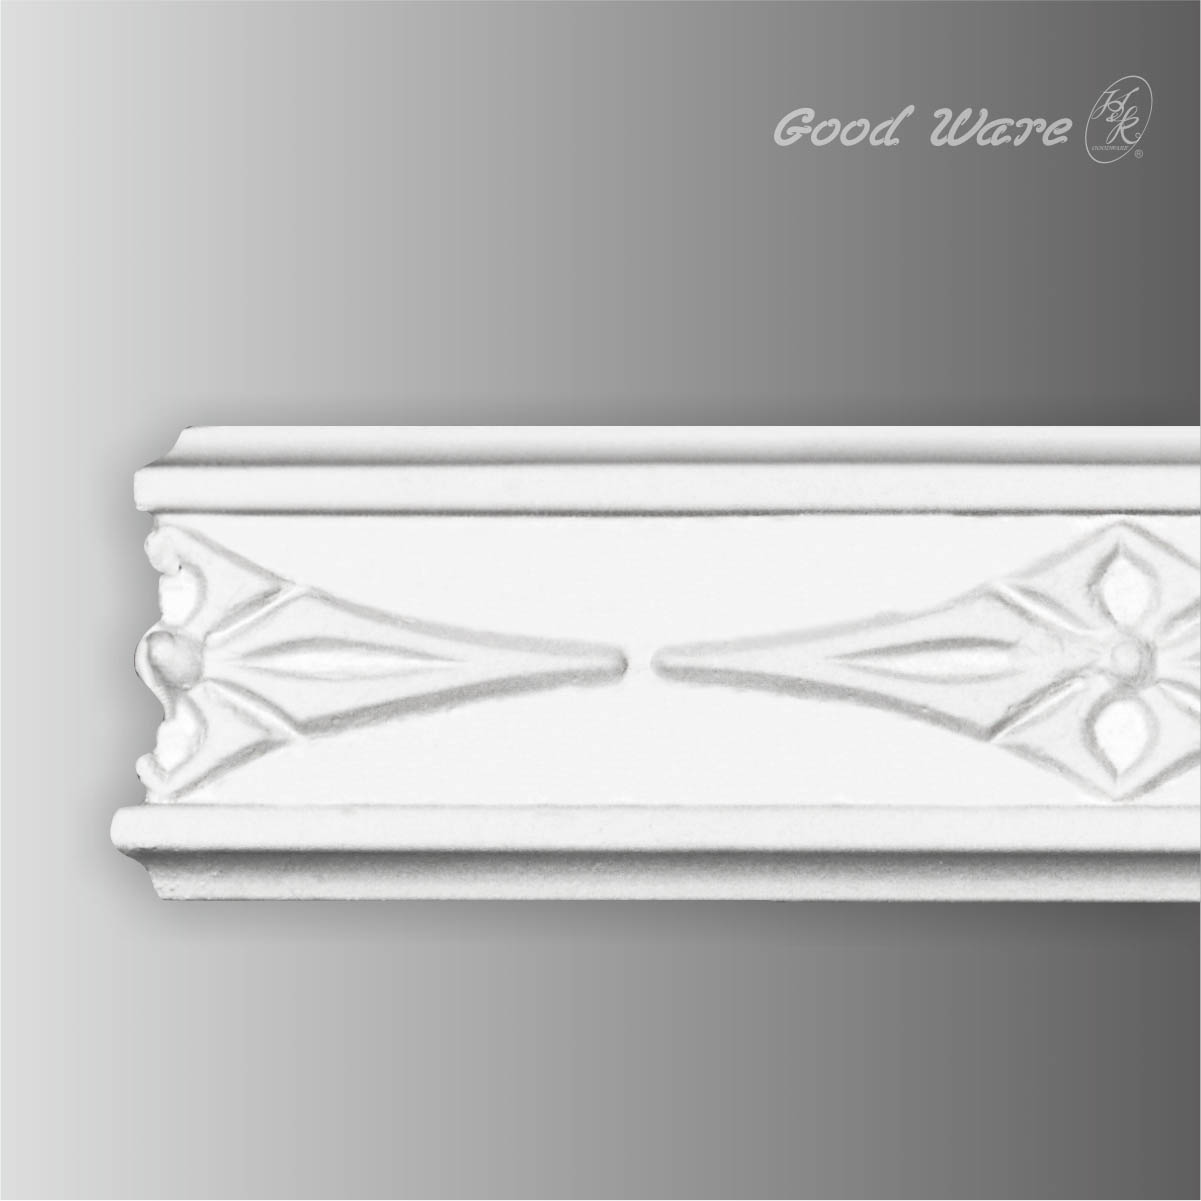 PU decorative picture rail moulding